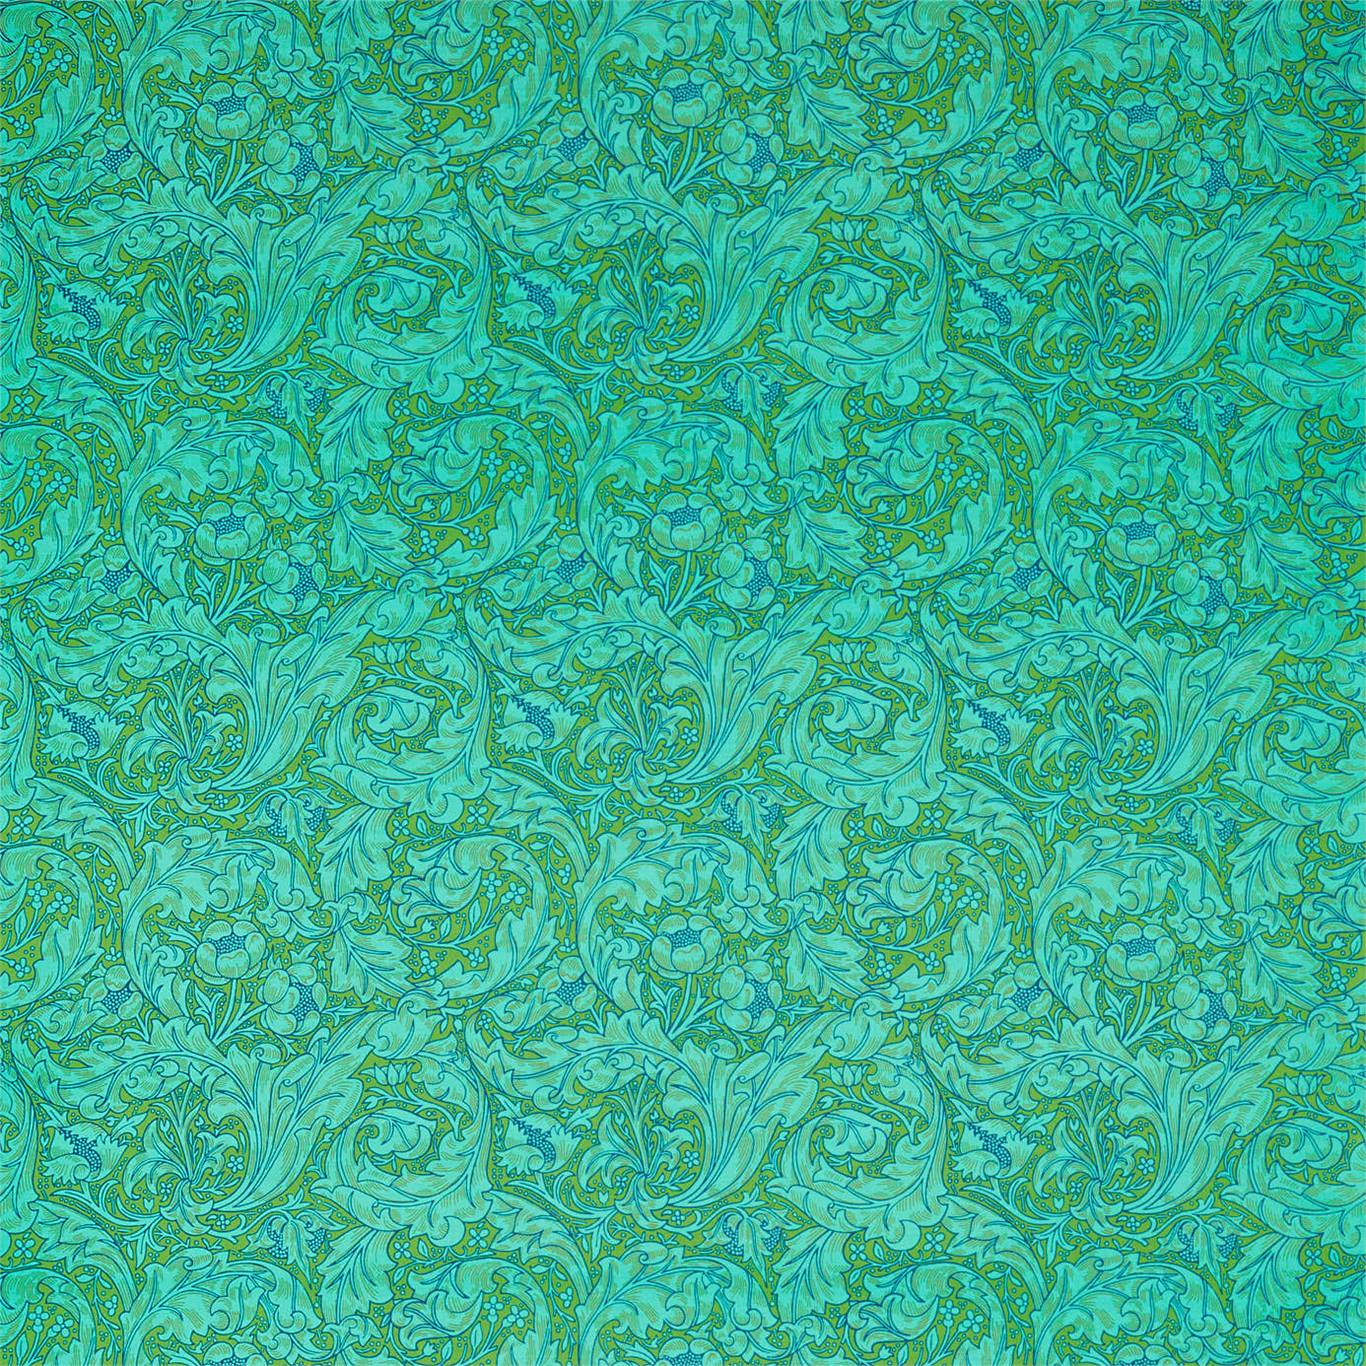 DBPF226840 Collection - Queens Square Fabric